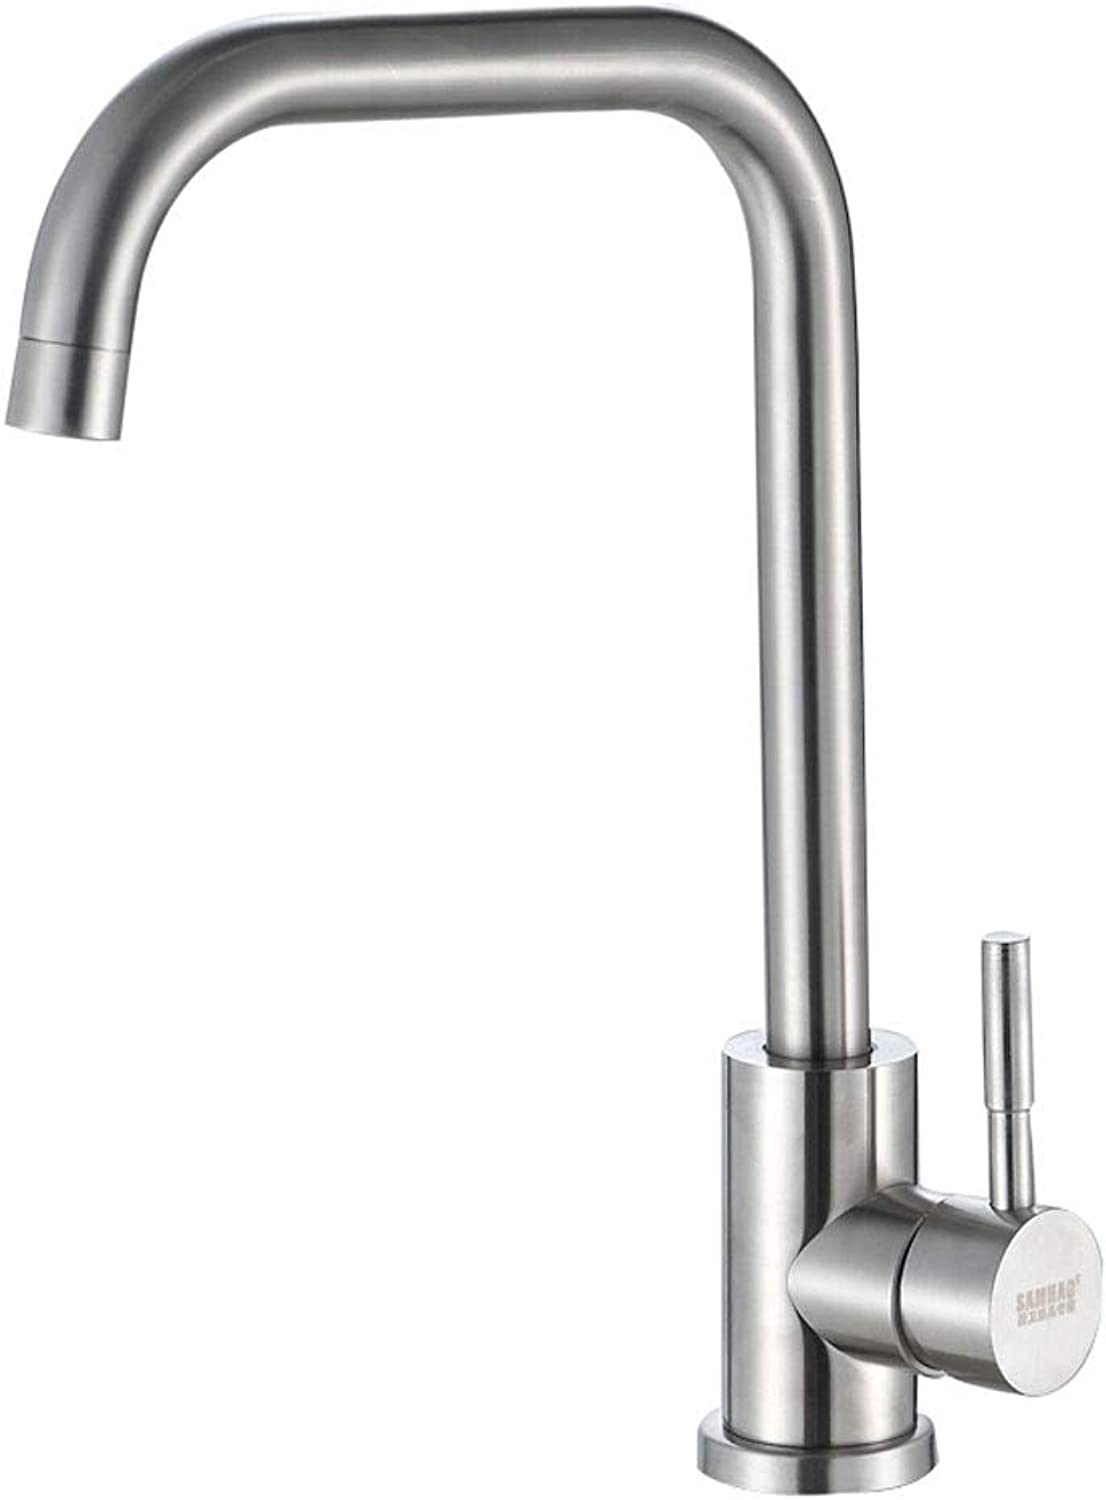 WOOMD WOOMD Italian Style Kitchen Stainless Steel Faucet 360 Degree redating Bathroom Faucet Pub Kitchen Faucet Hot Cold Basin Mixer Sink Tap Durable Bathing Center Faucet(Lead-free,ceramic Valve Core